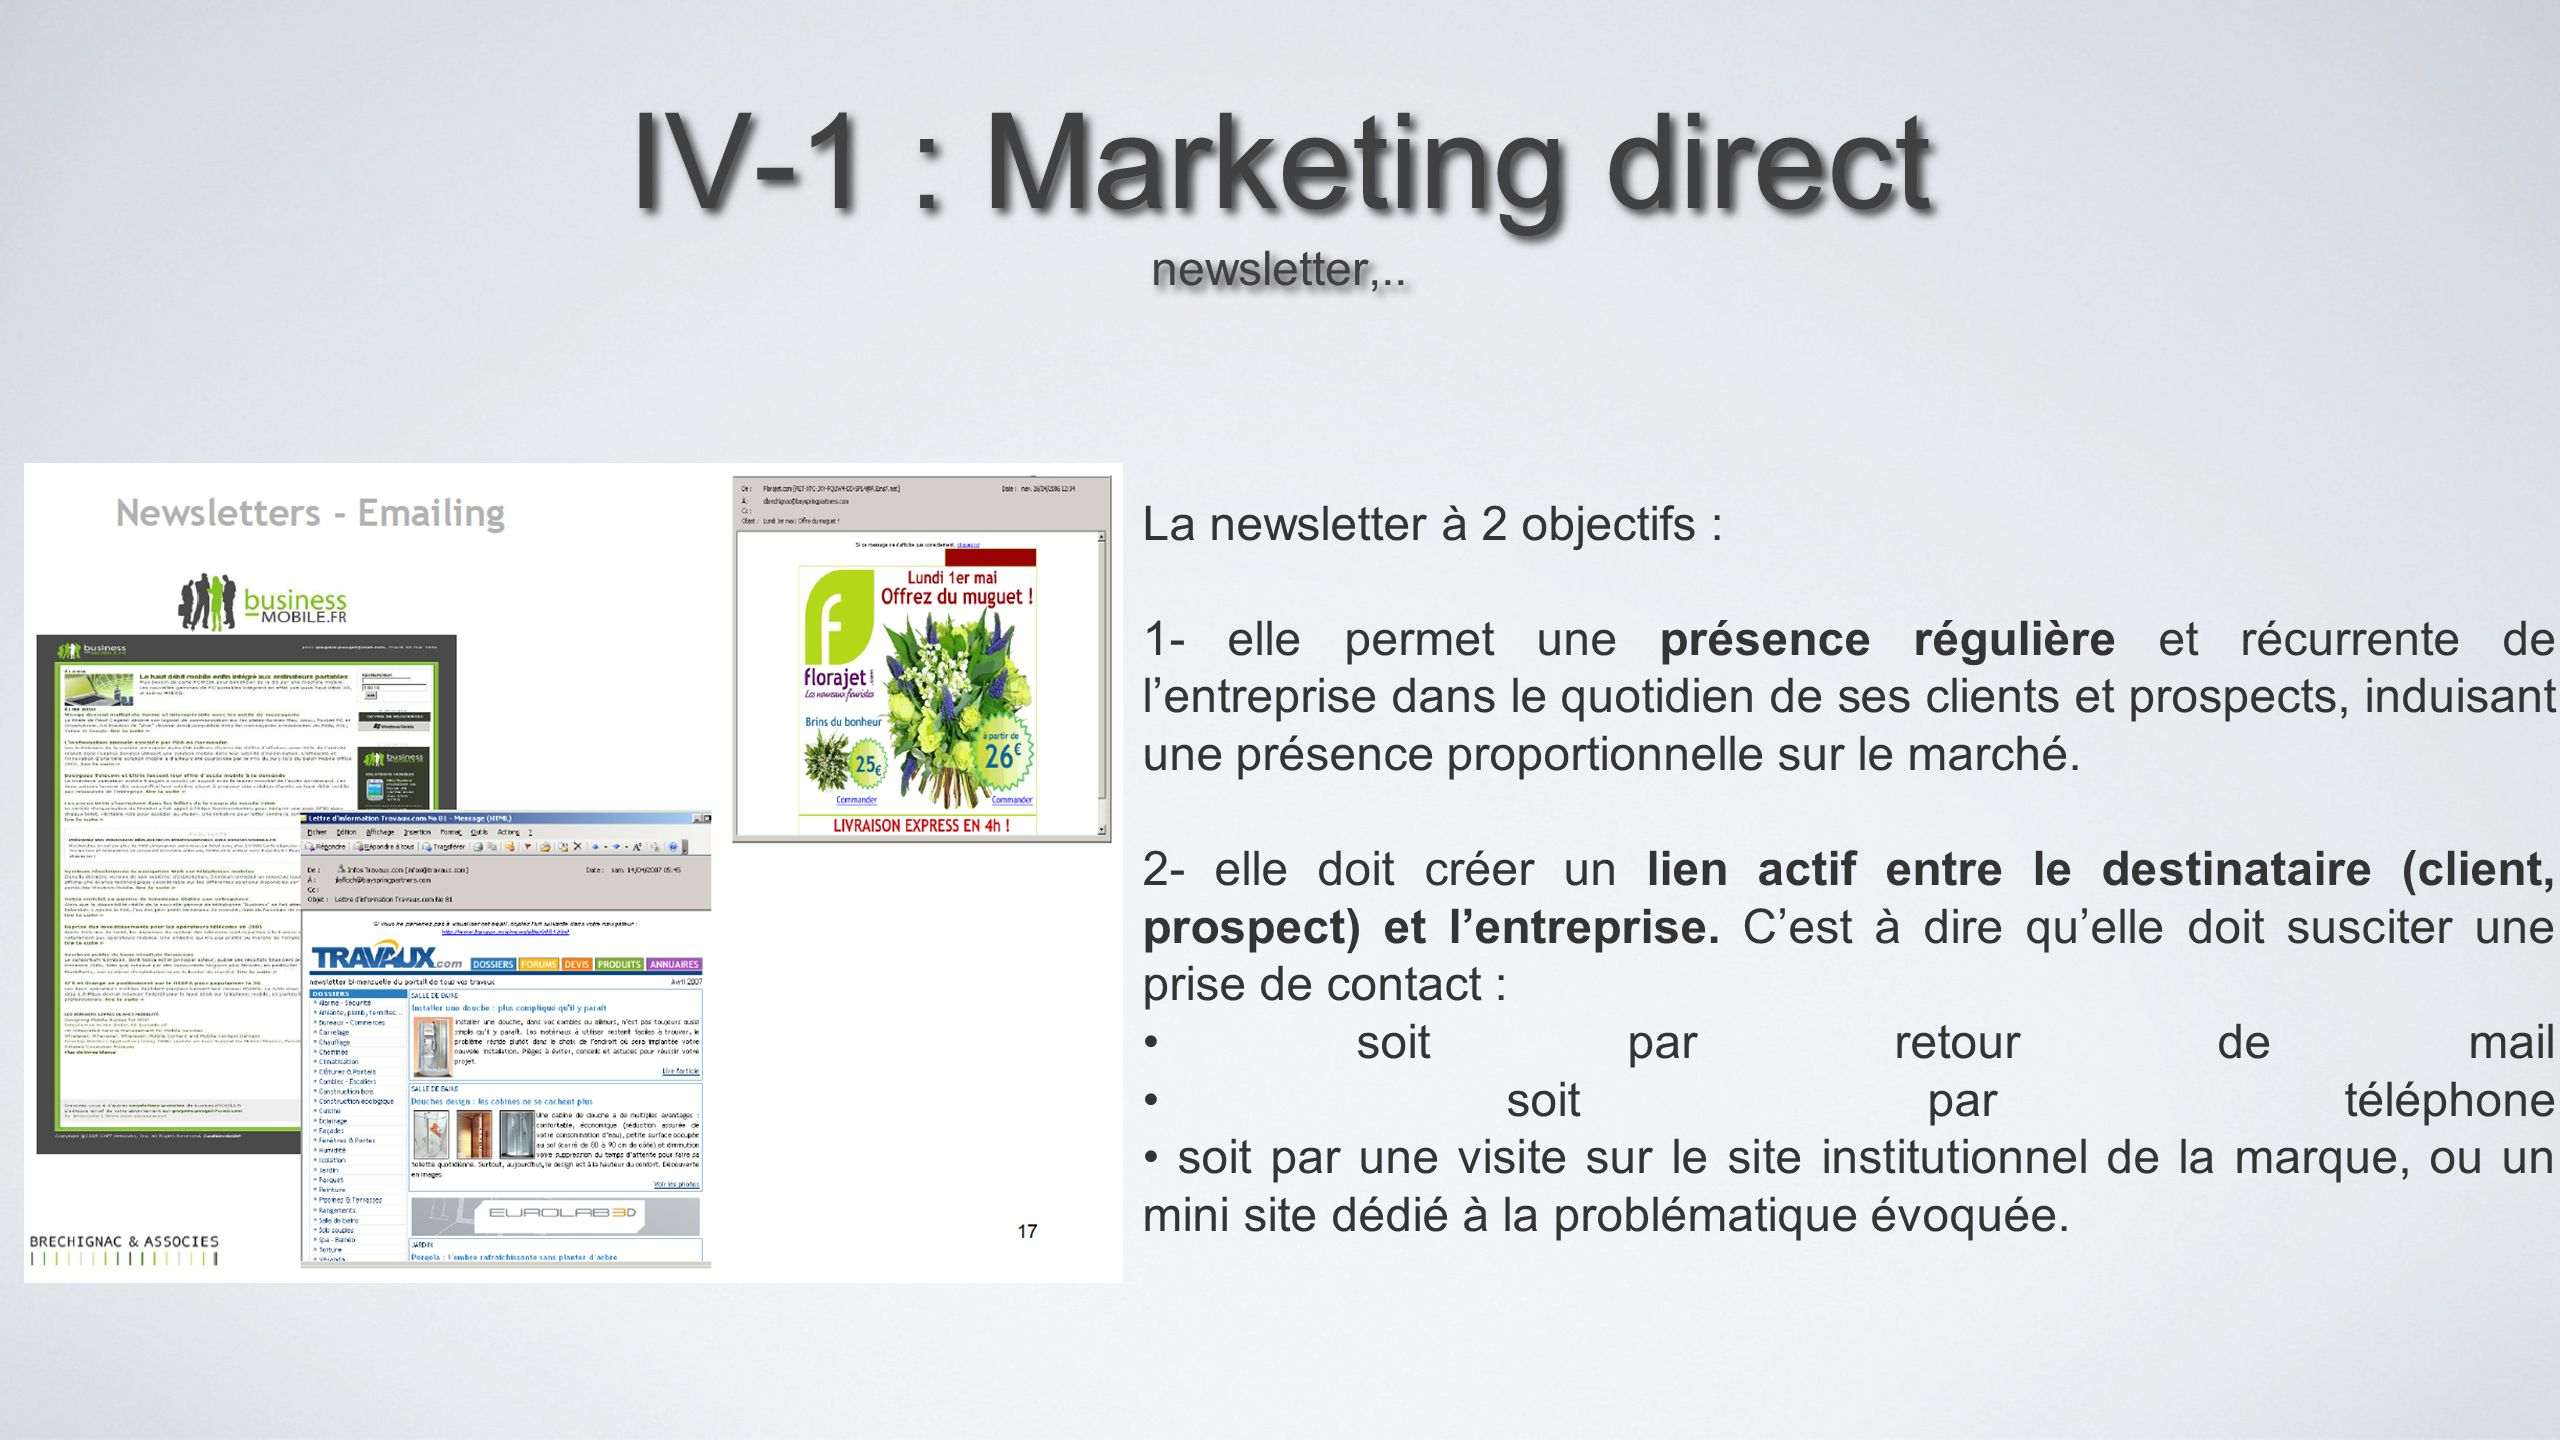 IV-1 : Marketing direct newsletter,..